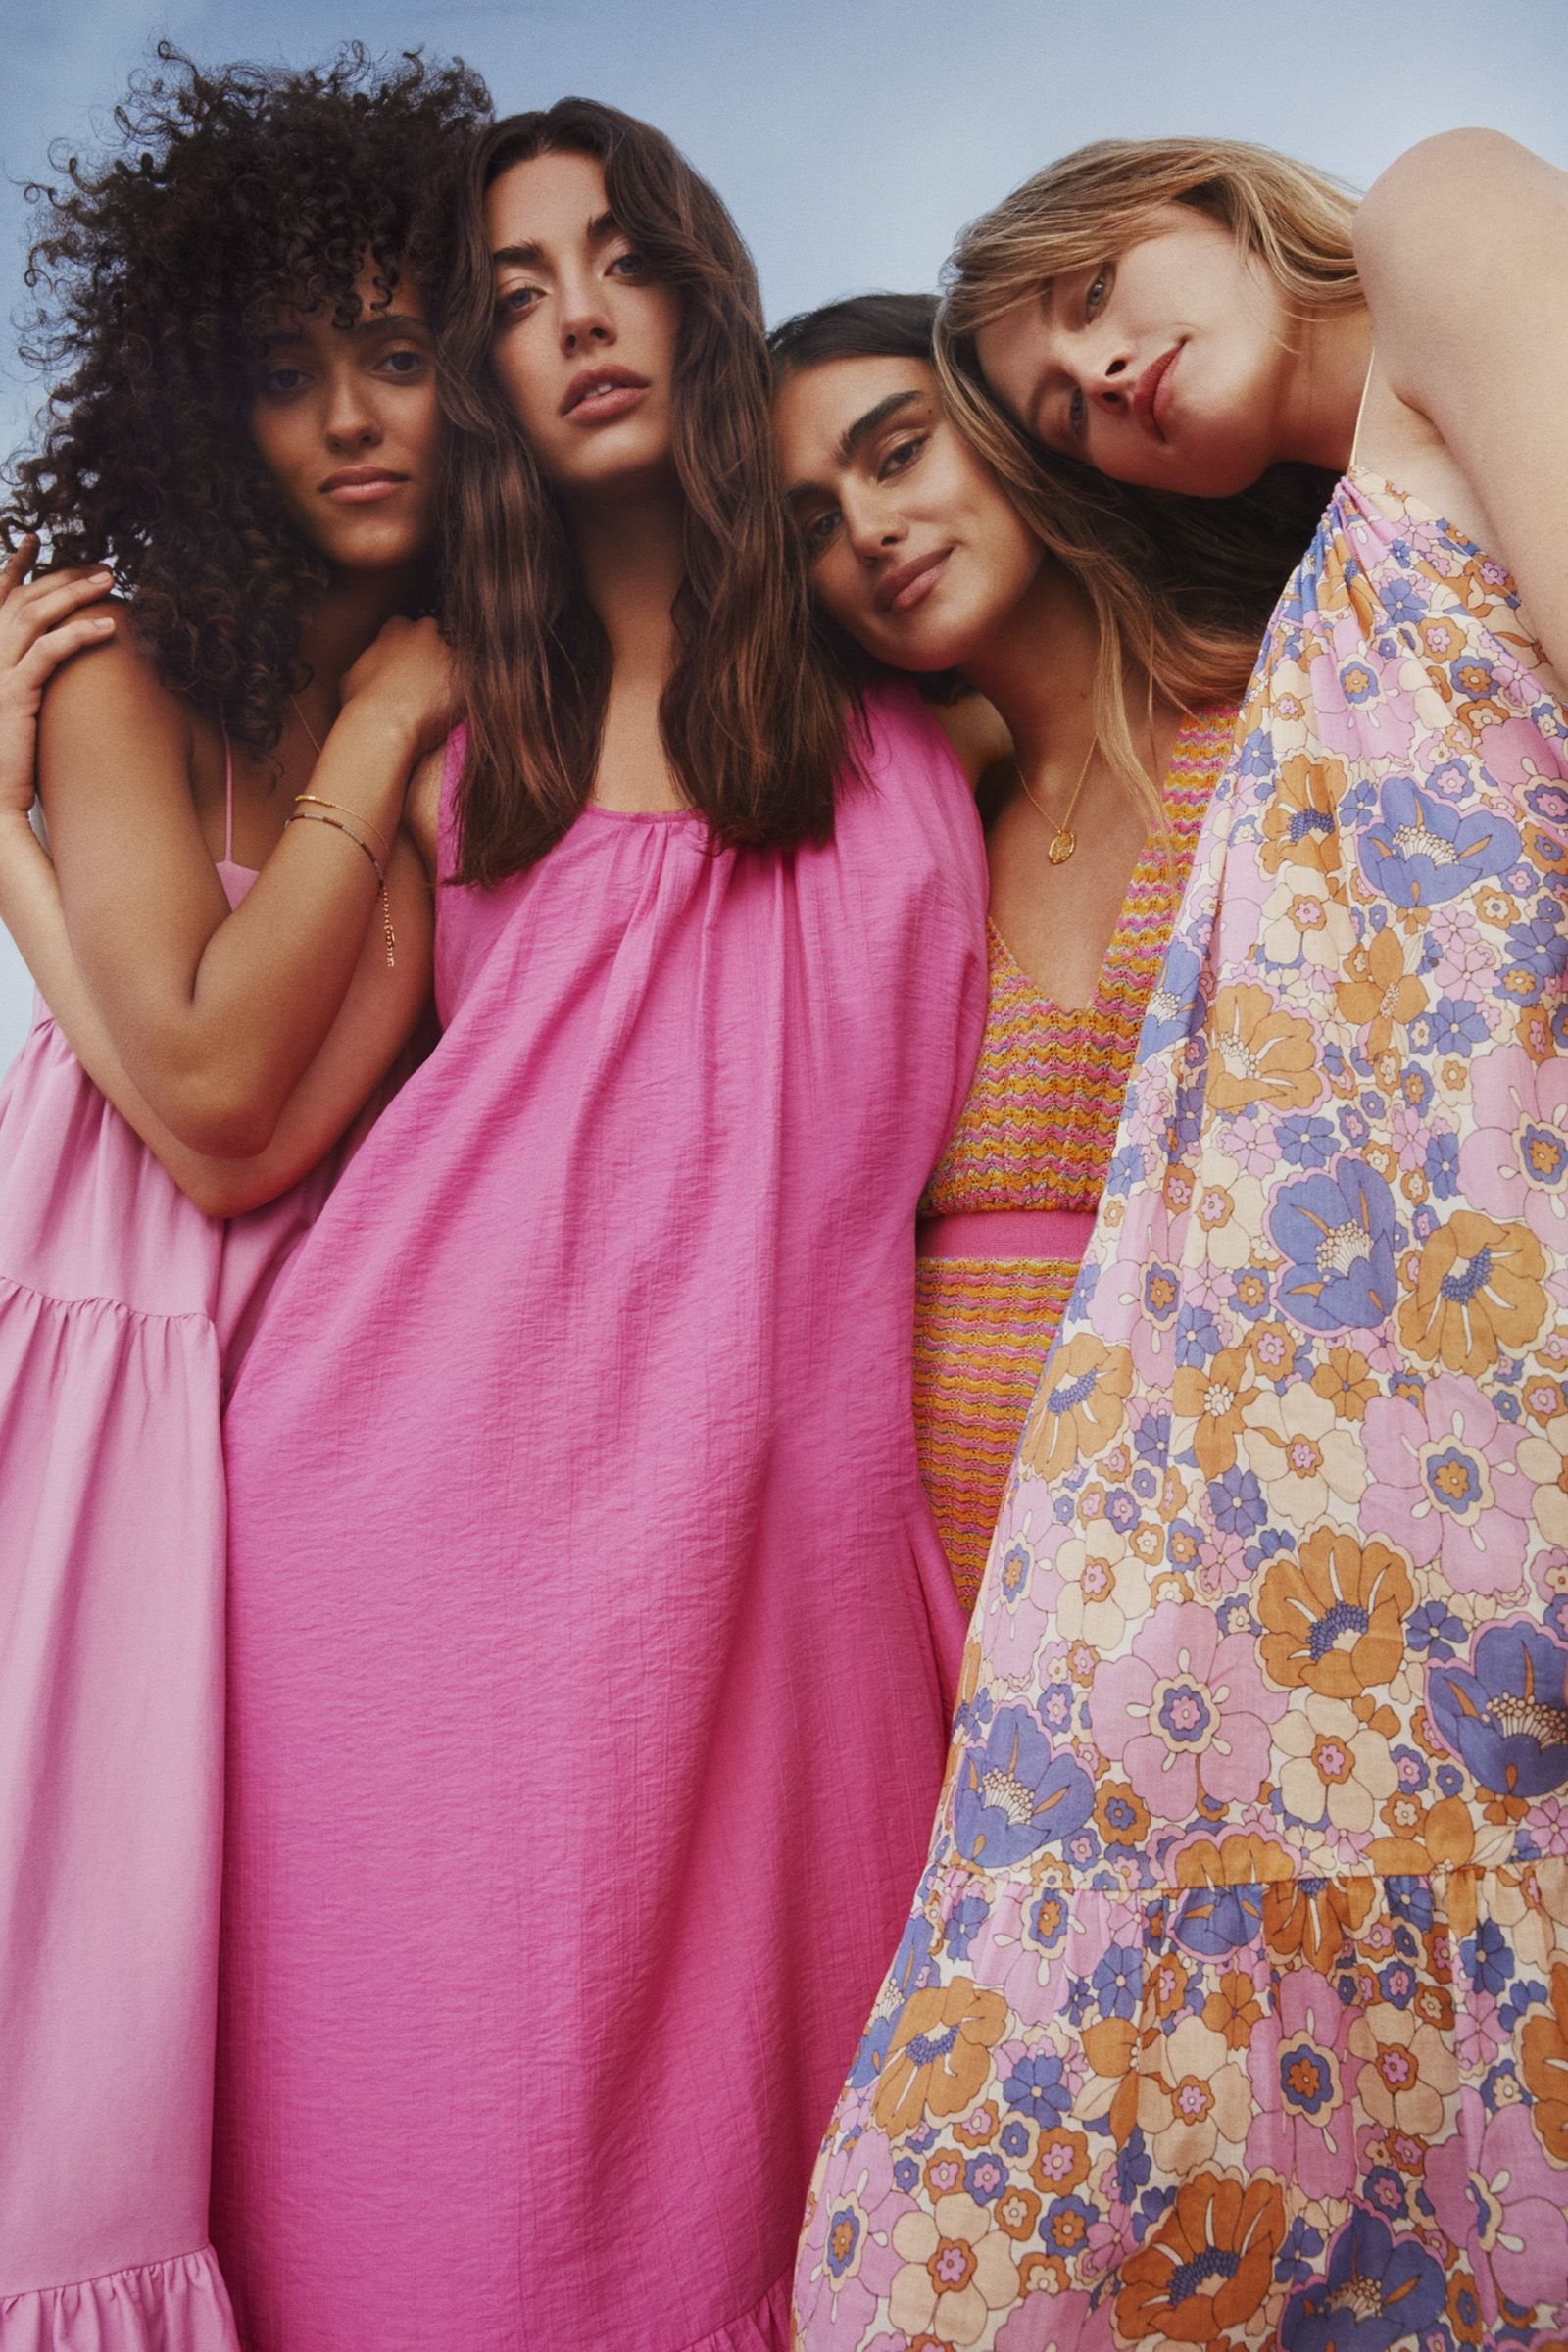 I Haven't Shopped All Year, But Mango's Summer Collection Just Changed My Mind